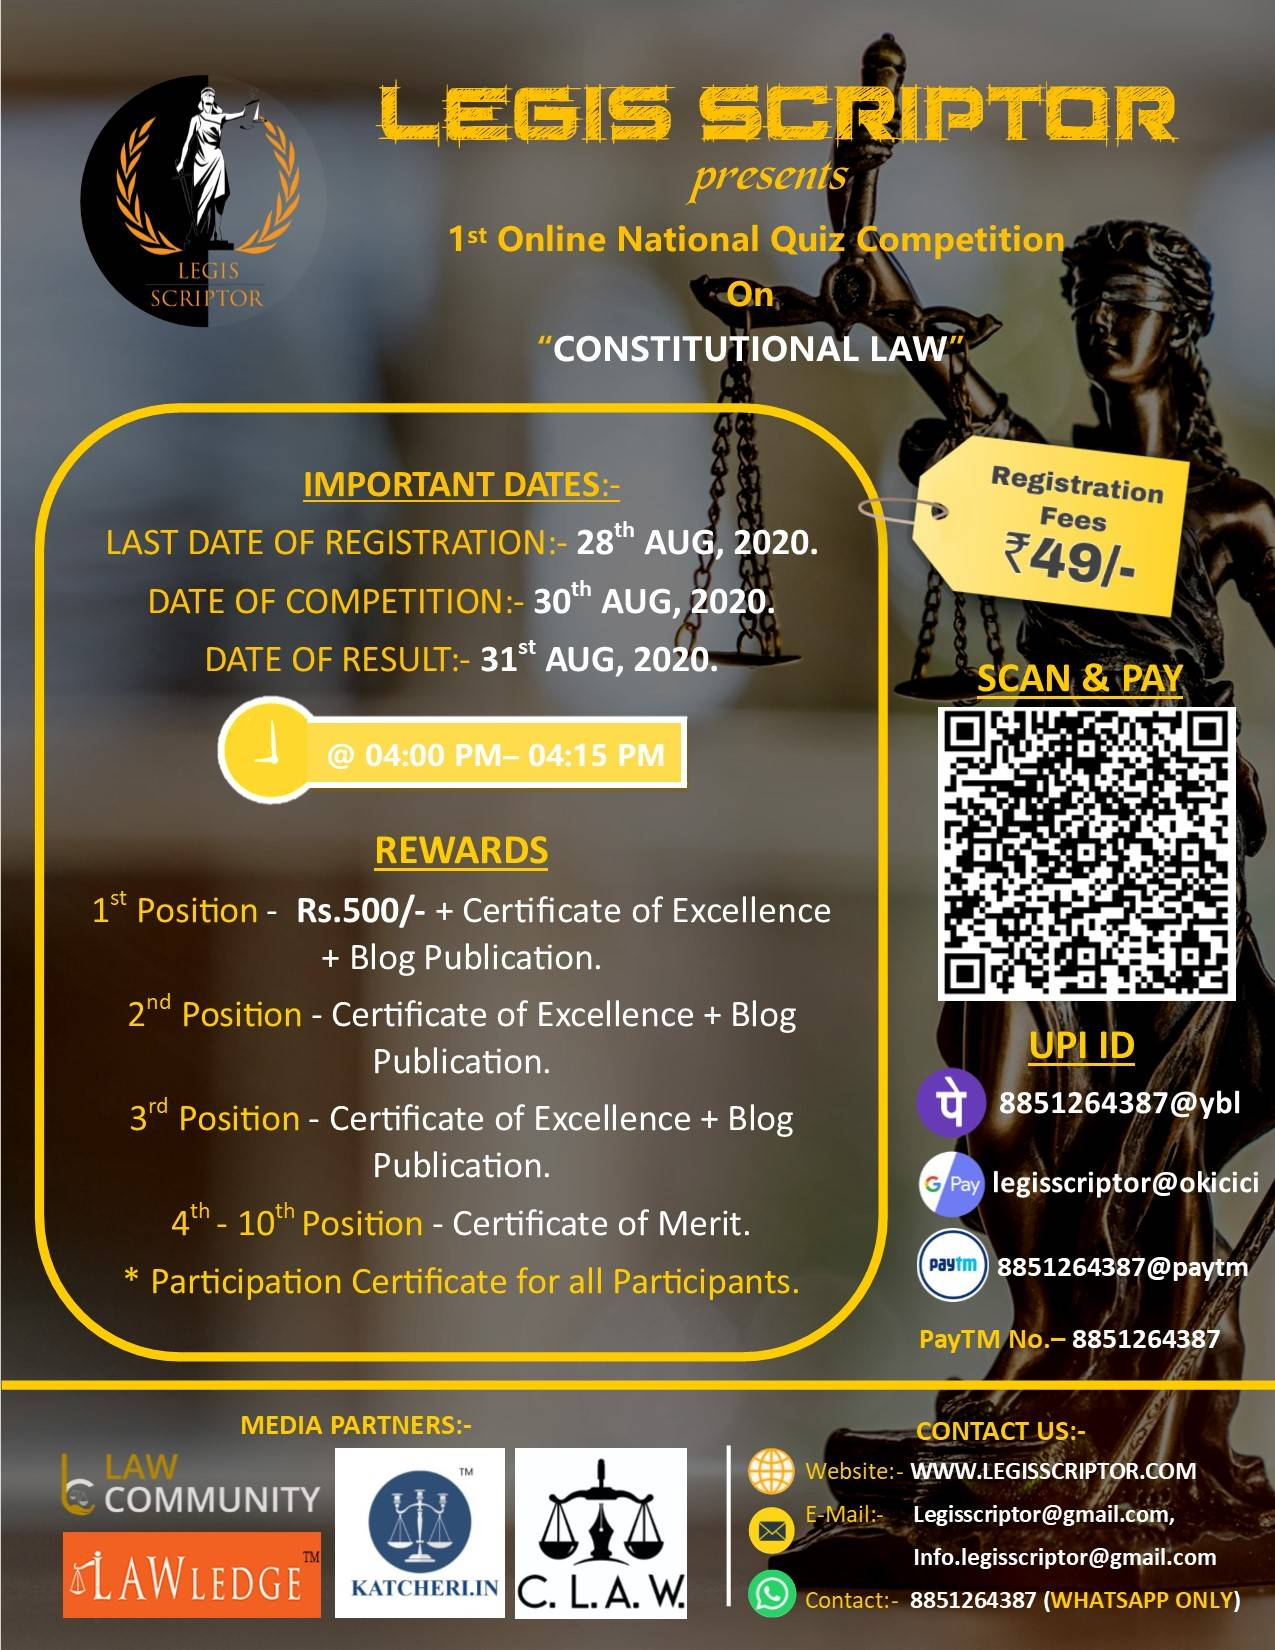 Legis Scriptor's First Online National Law Quiz Competition